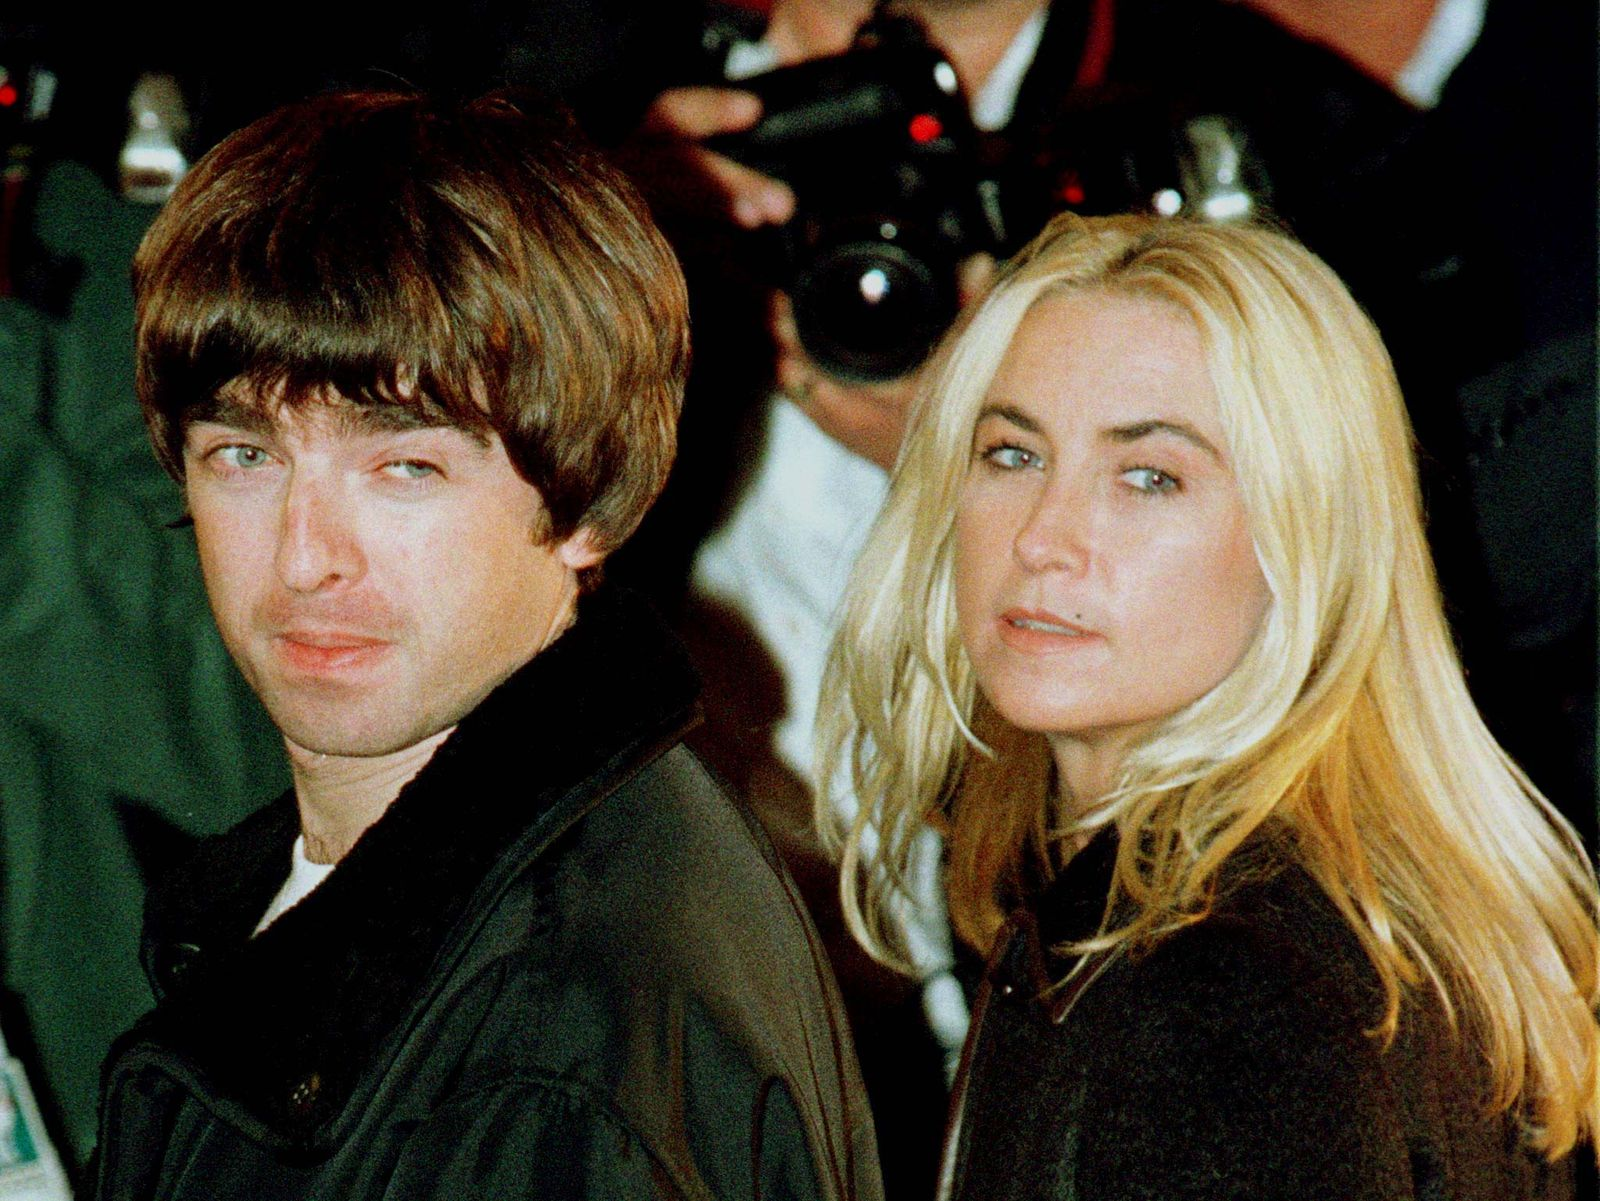 Oasis guitarist Noel Gallagher and his girlfriend Meg Matthews arrive for the grand opening of the F..